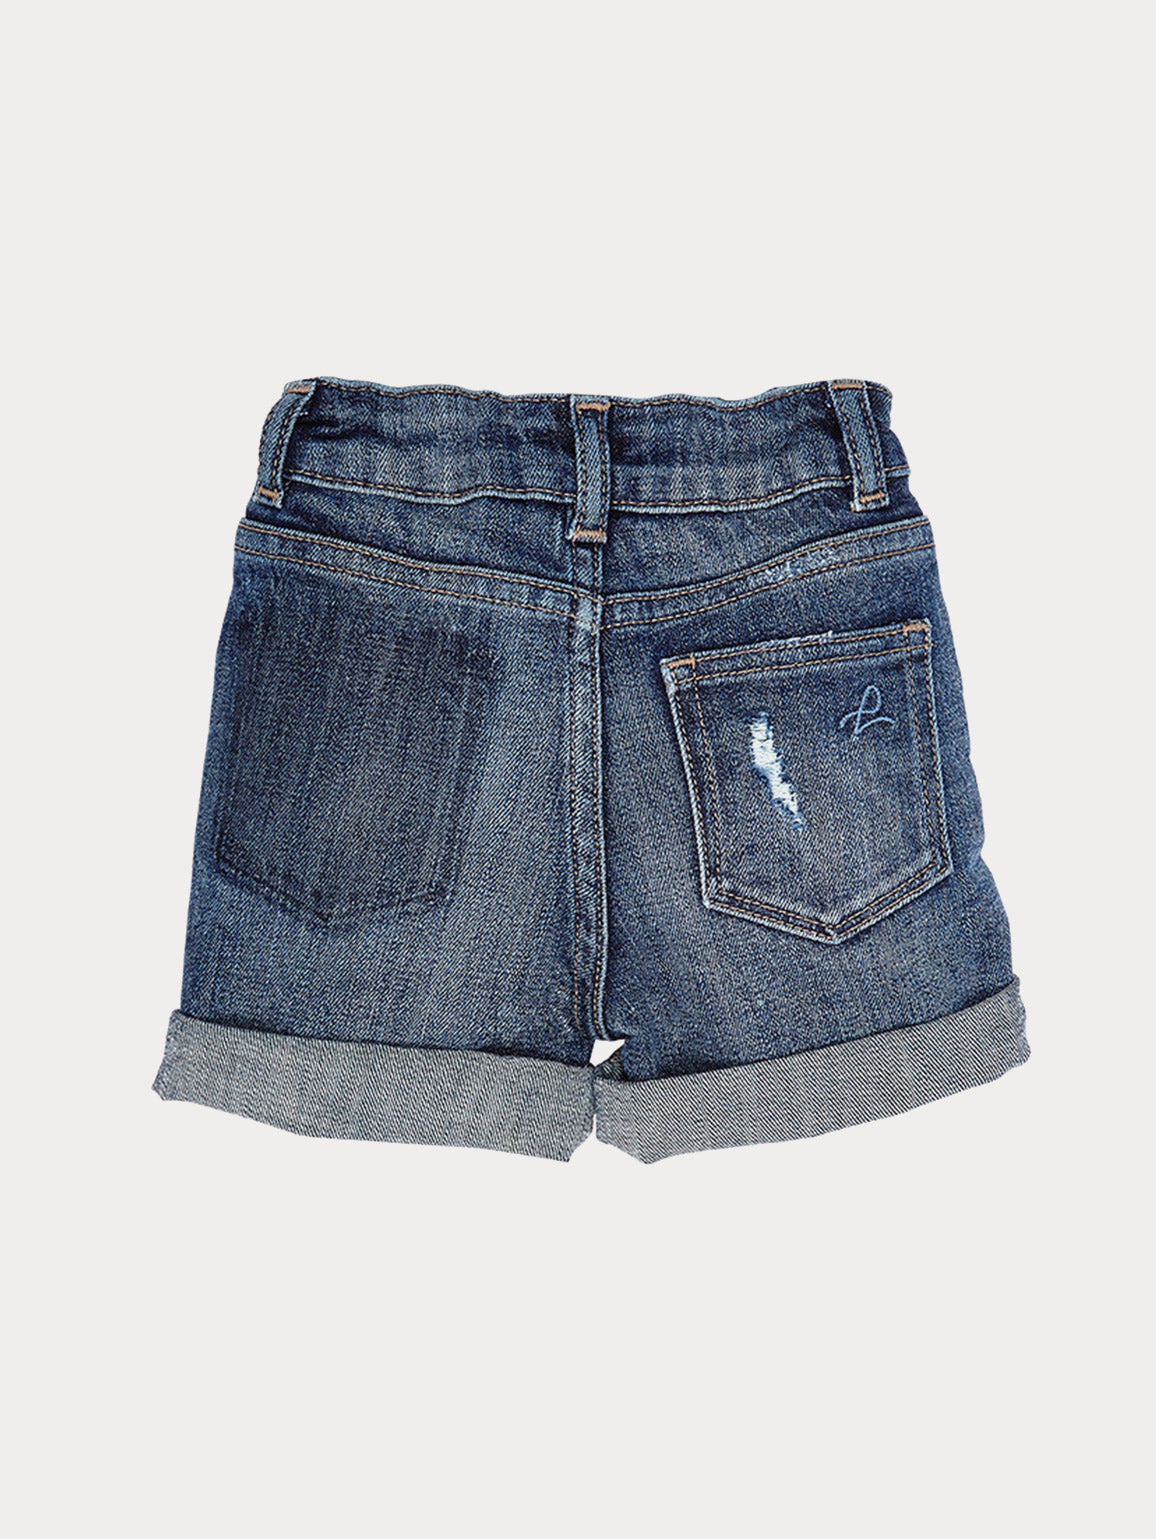 Infant Girls - Infant Cuffed Denim Shorts - Kaley Infant Short Liberty - DL1961